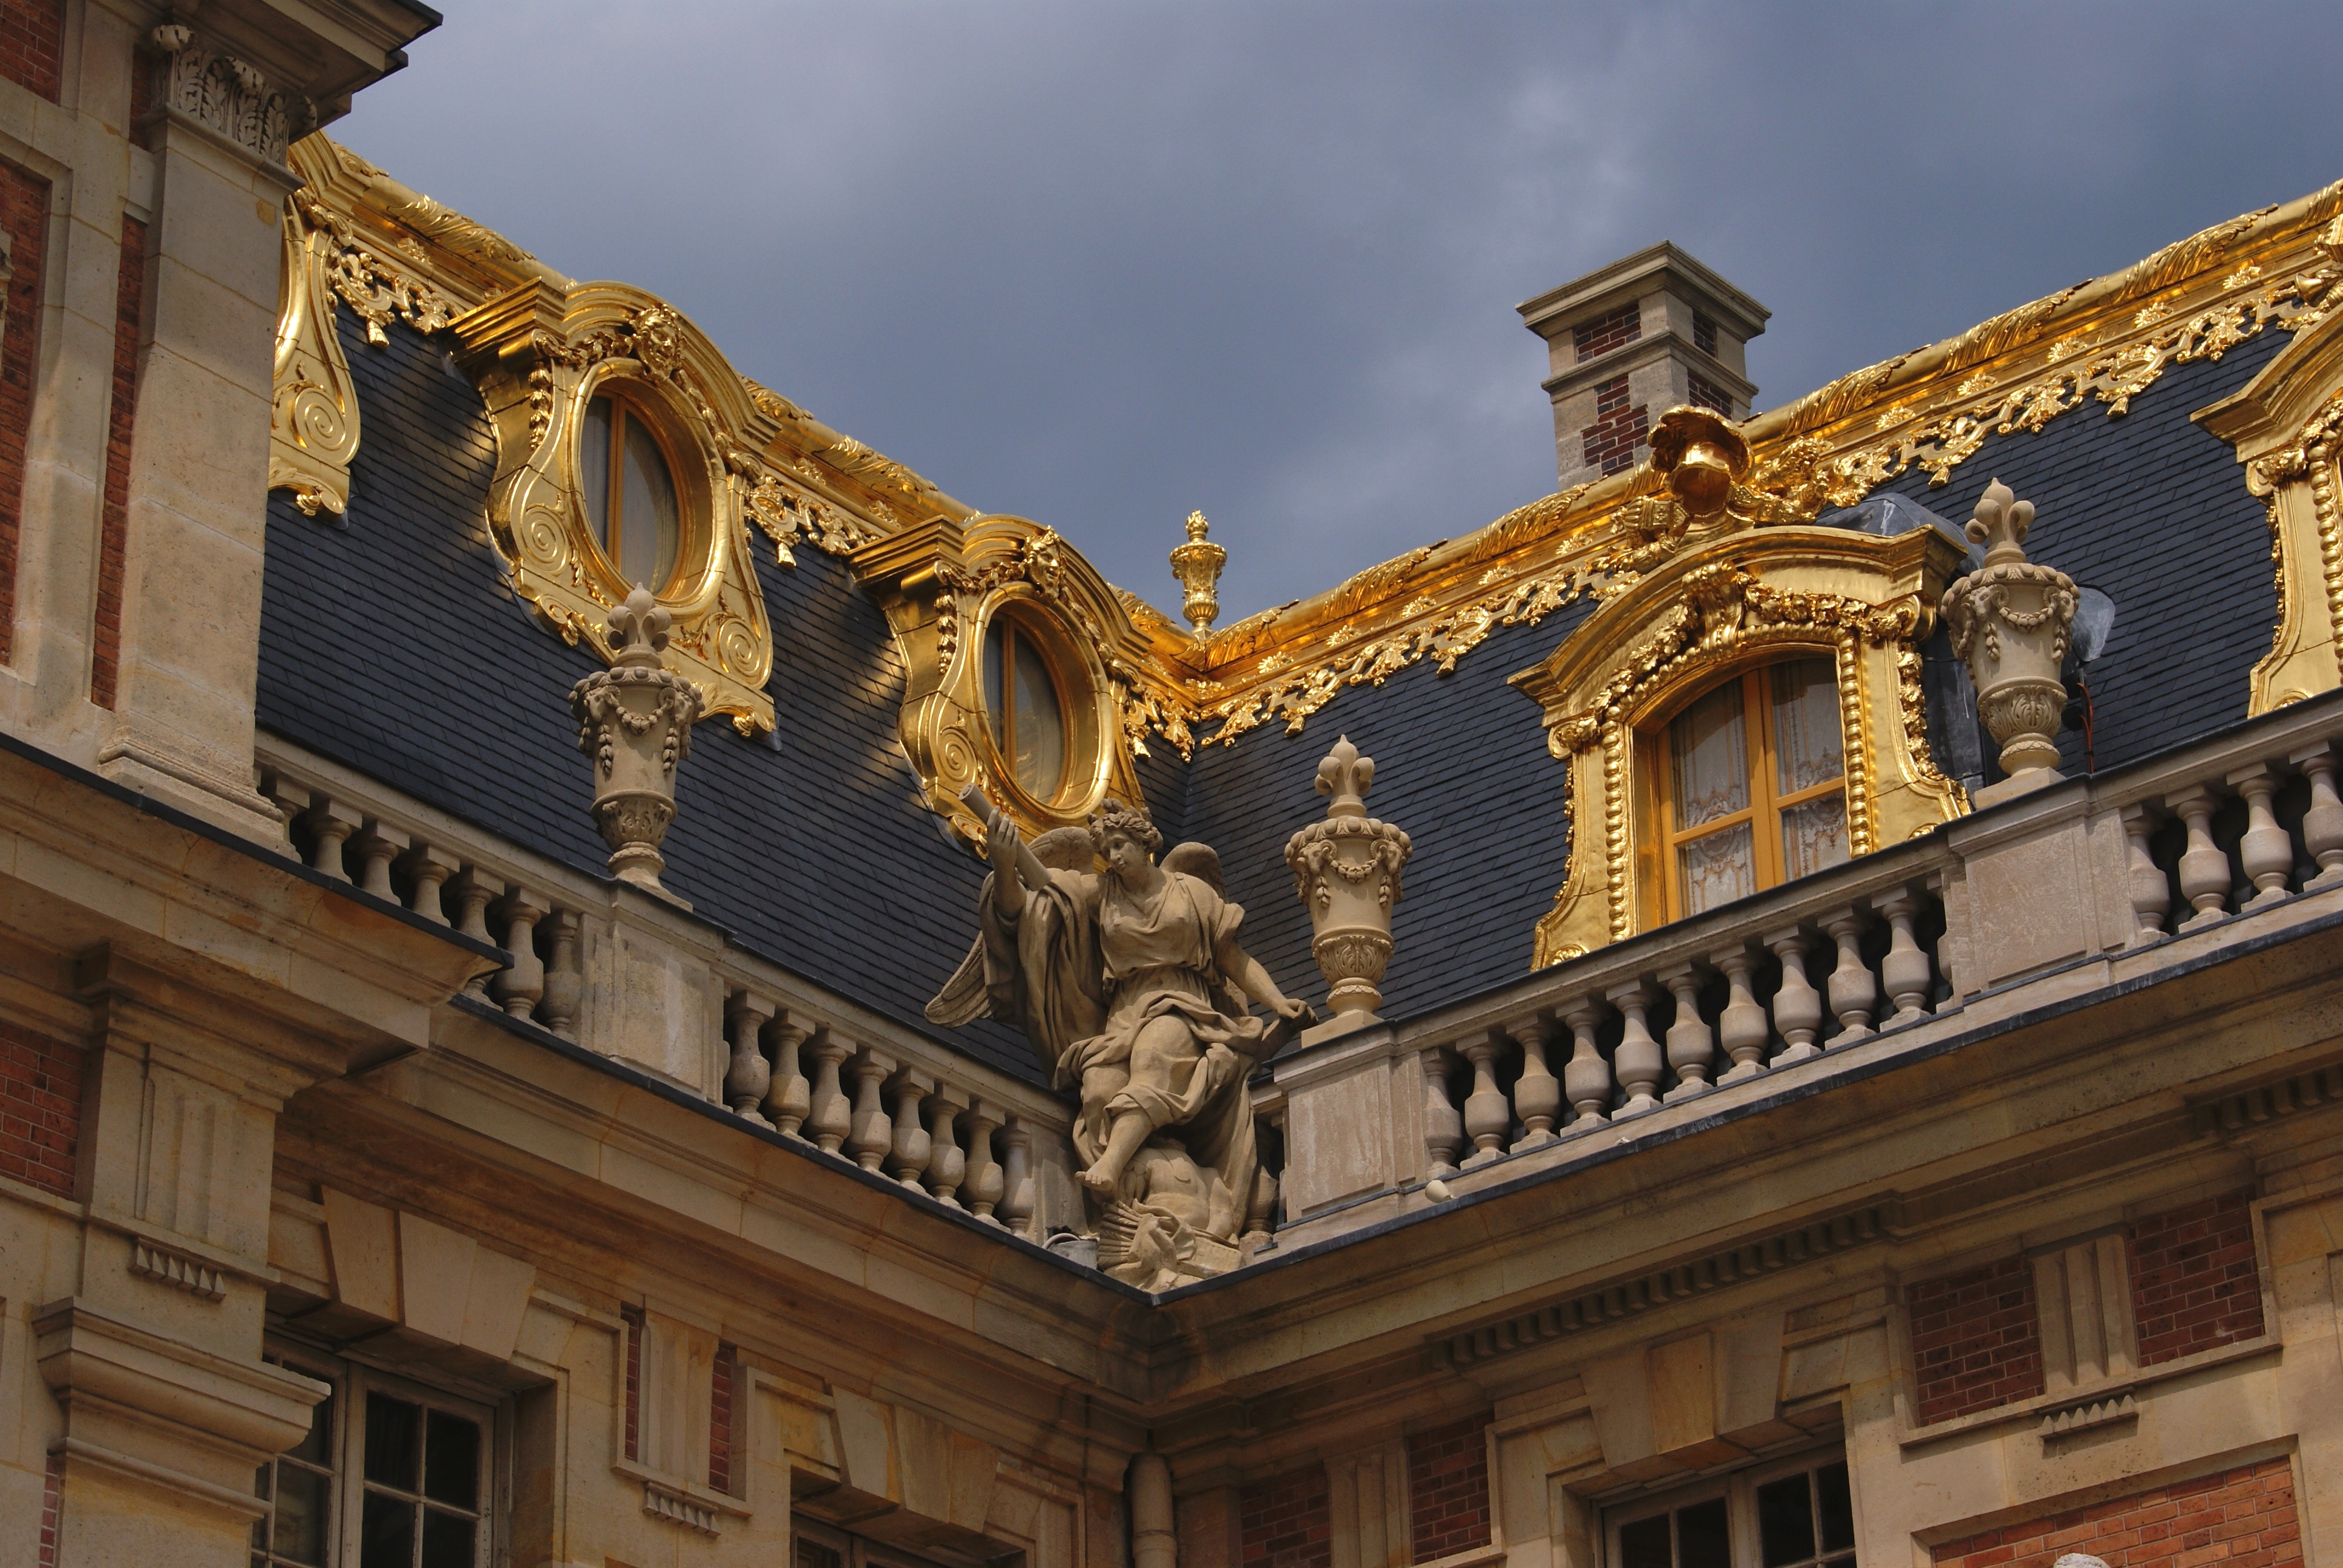 Palace of Versailles roof detail